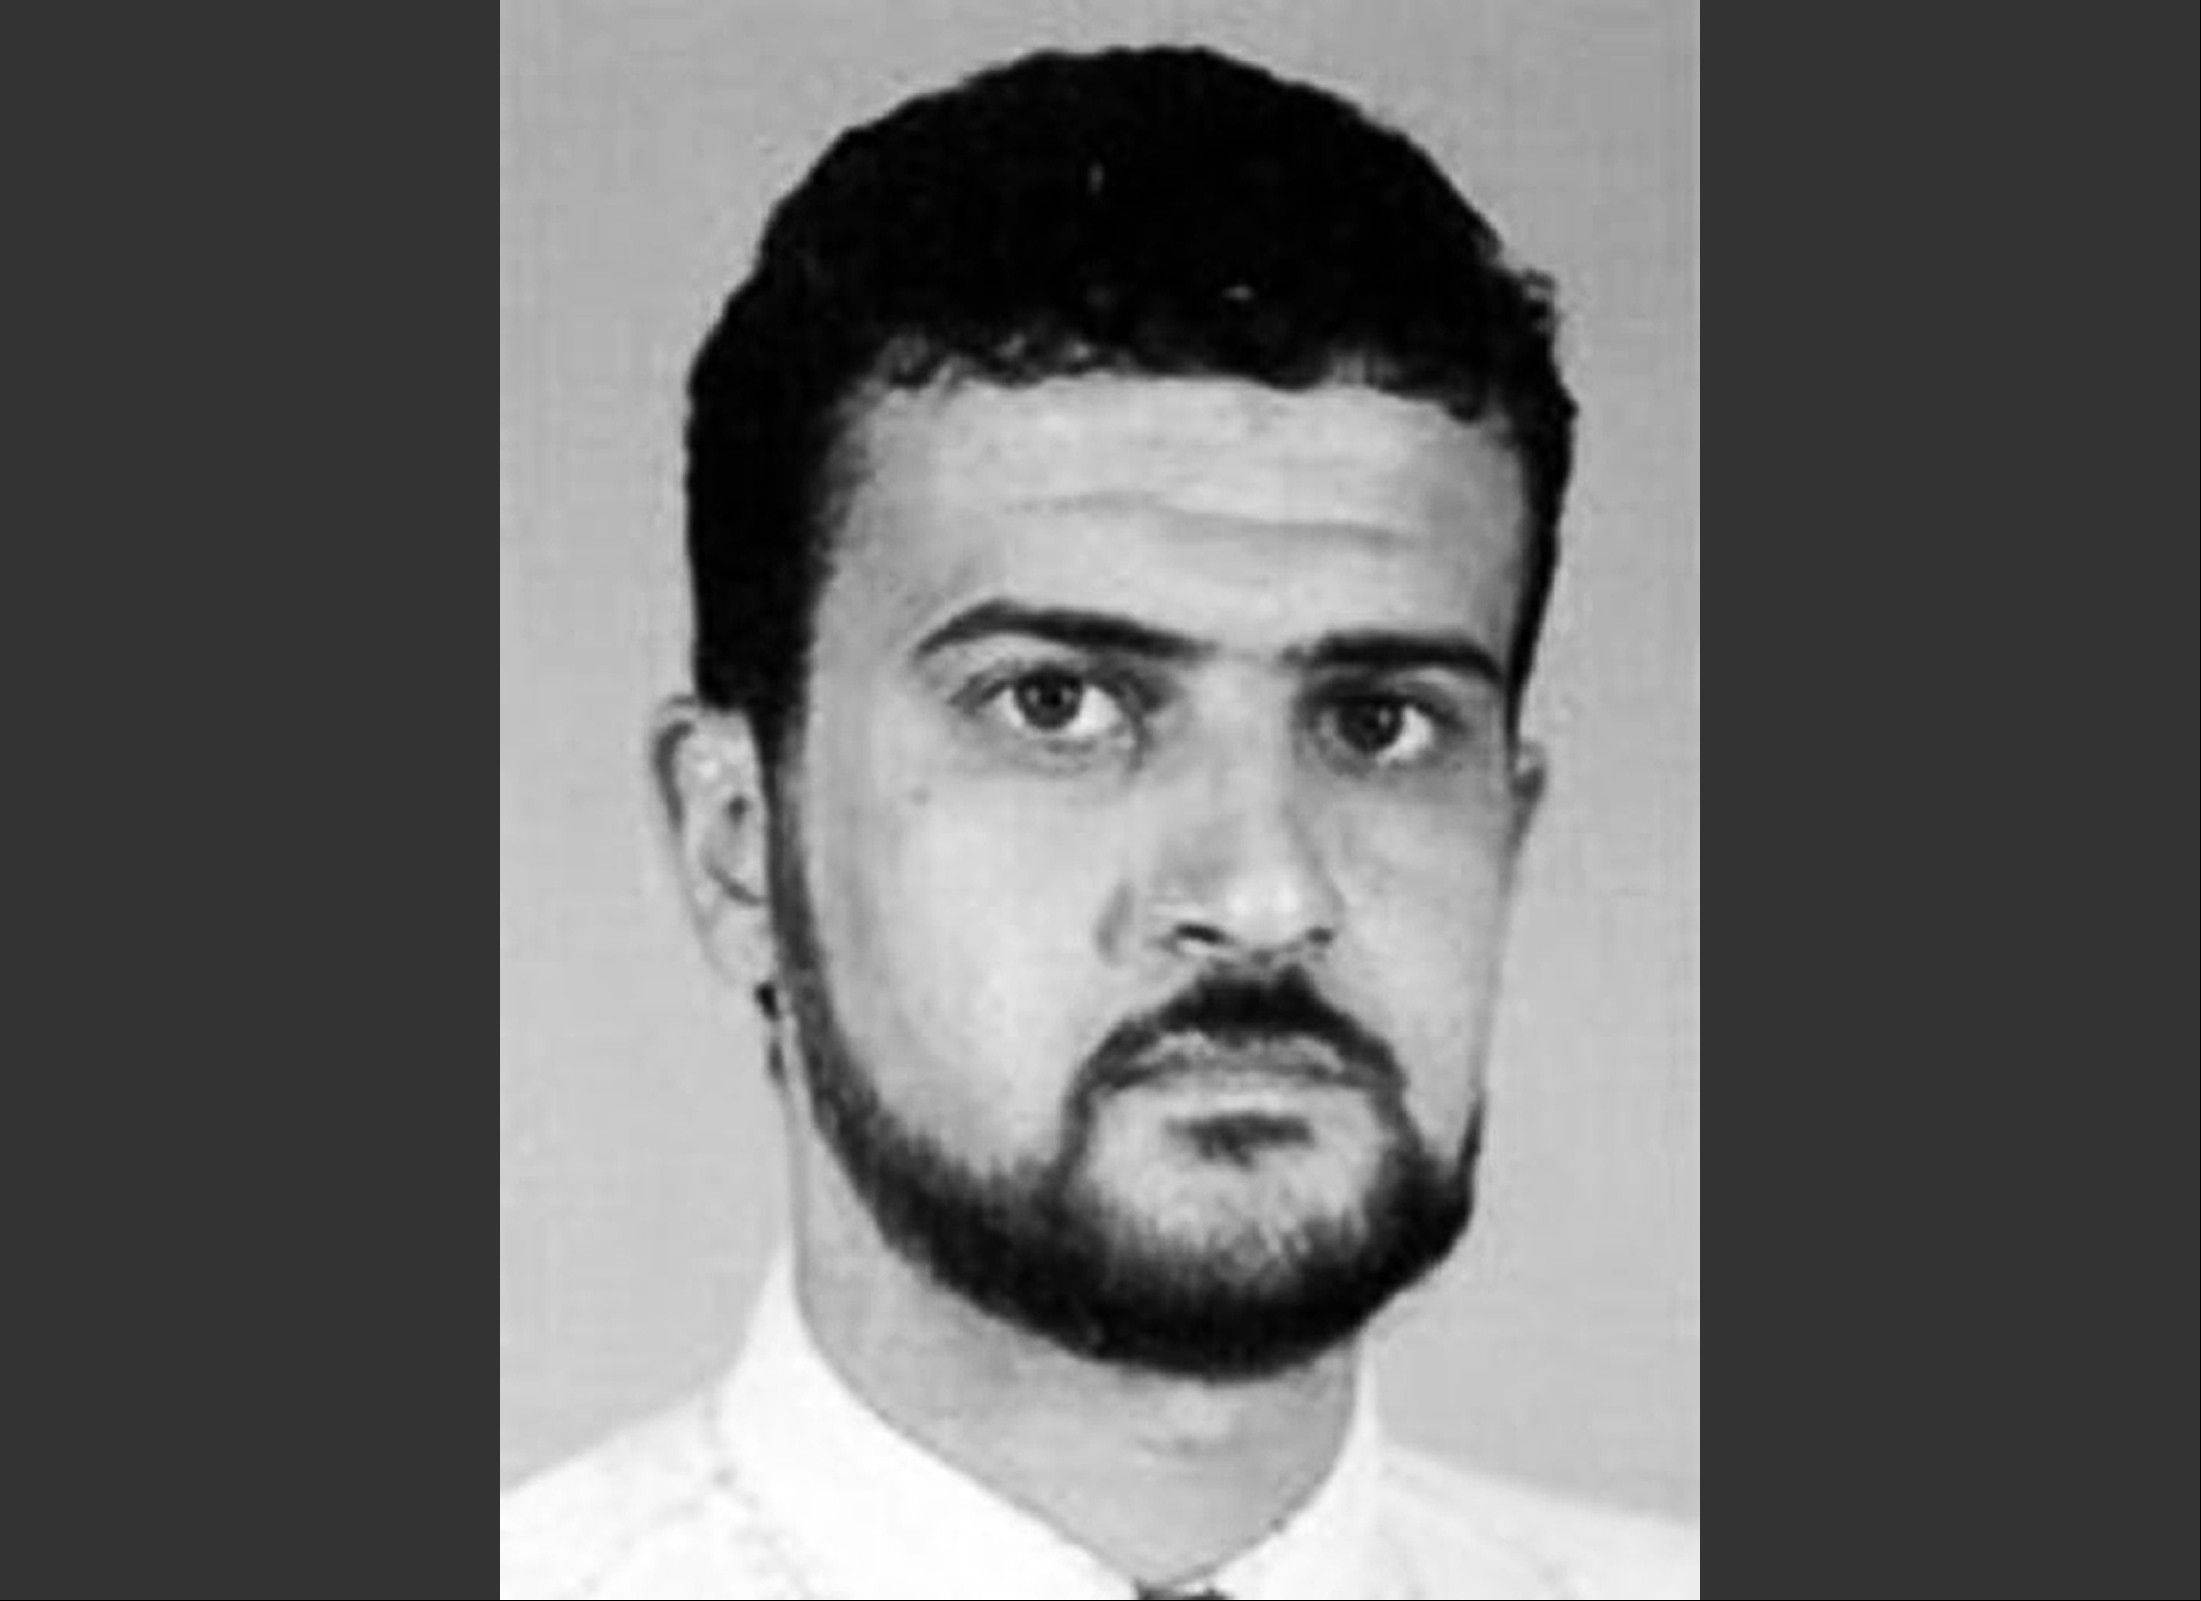 This file image from the FBI website shows al-Qaida leader Abu Anas al-Libi. Al-Libi, who was captured in an Oct. 5, 2013, raid and held aboard a U.S. warship, is now in the United States. He is expected to stand trial over whether he helped plan and conduct surveillance for the bombings of U.S. embassies in Africa in 1998.